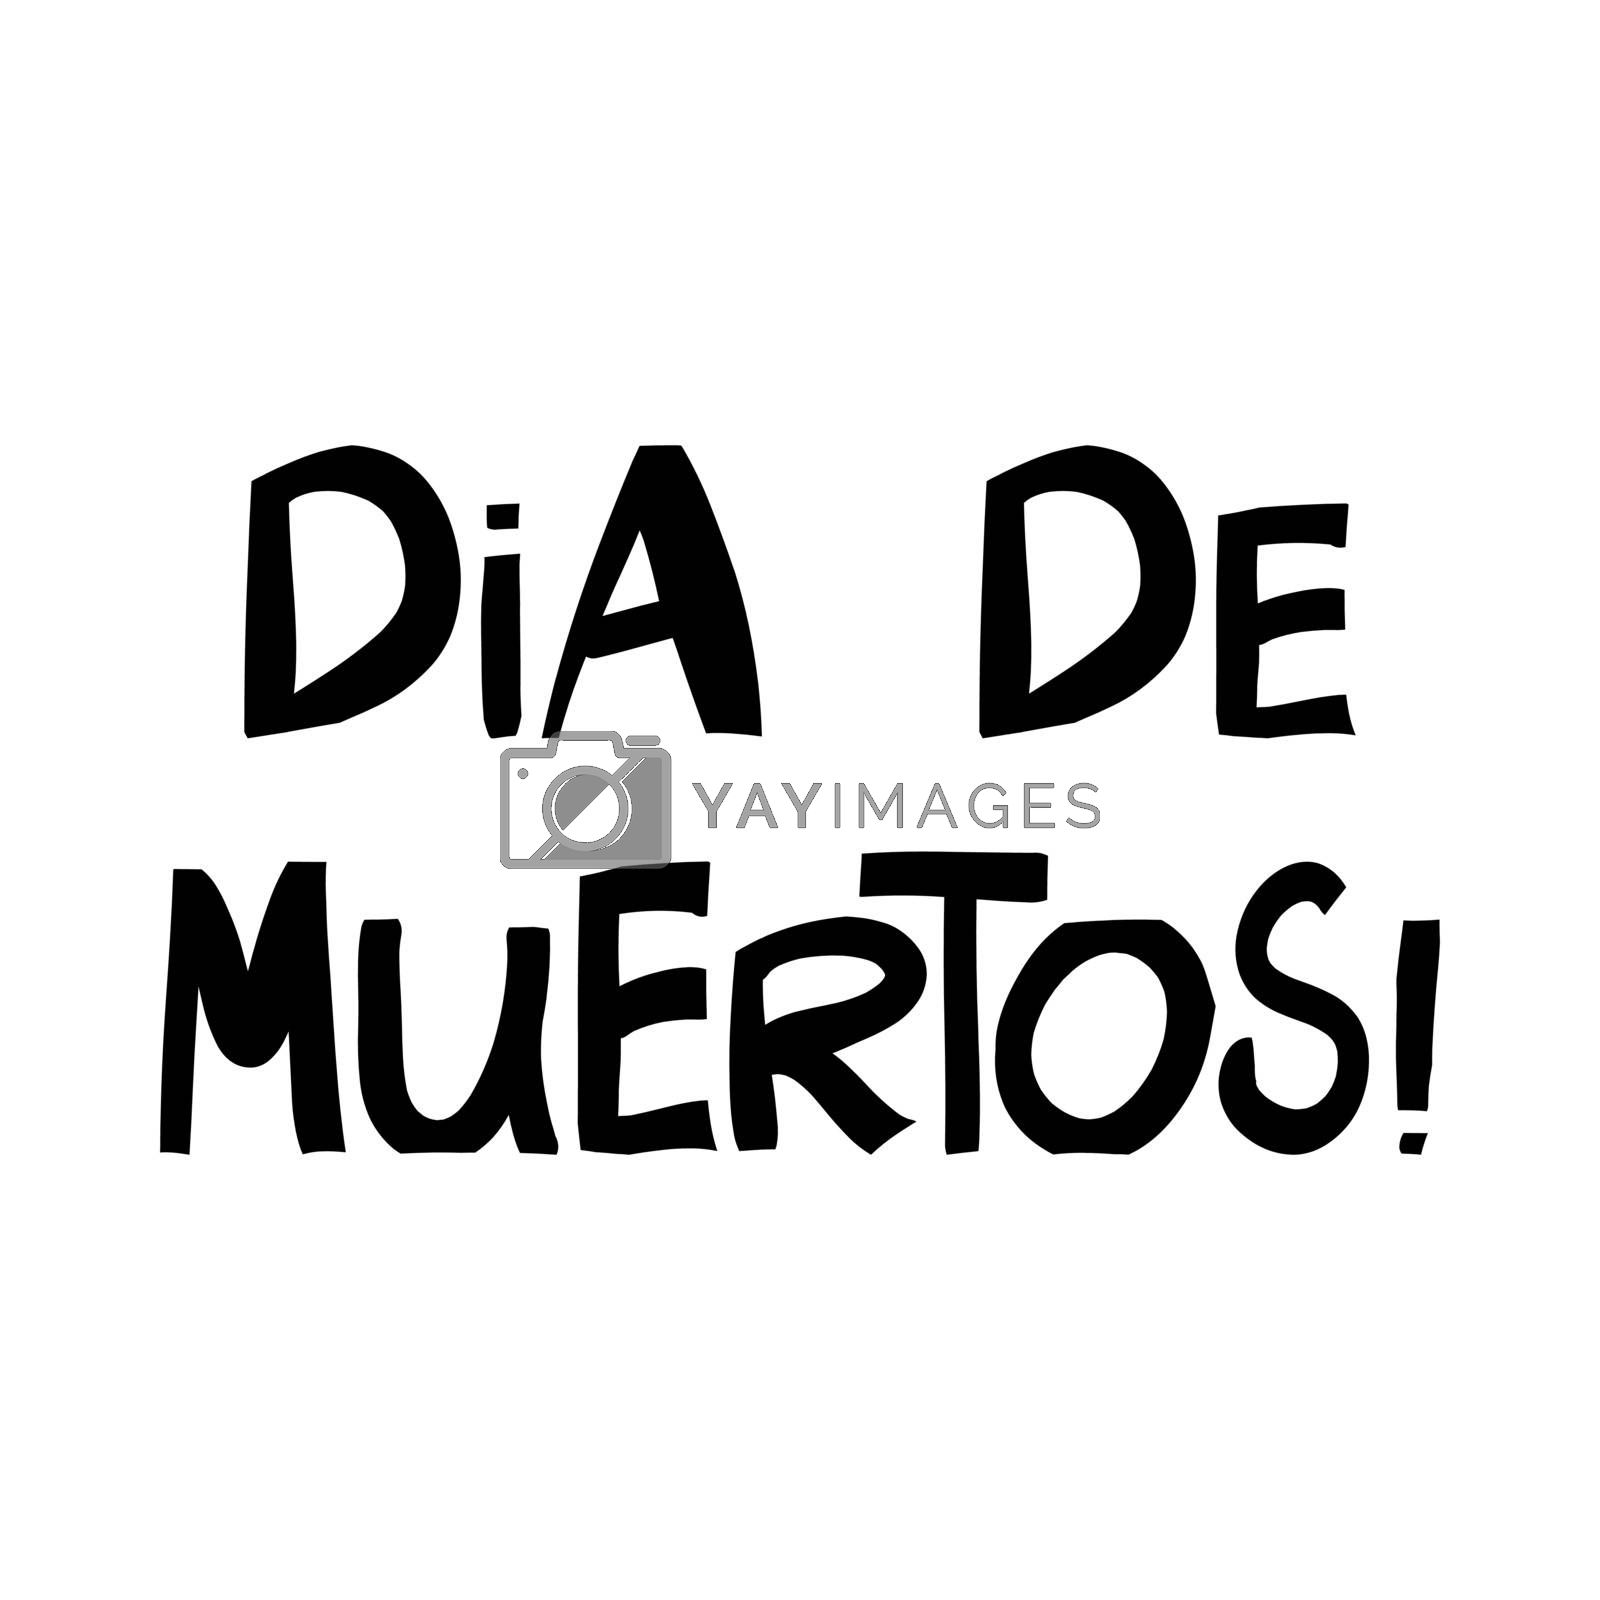 Day of the dead.. Cute hand drawn lettering in modern scandinavian style. Isolated on white. Vector stock illustration.